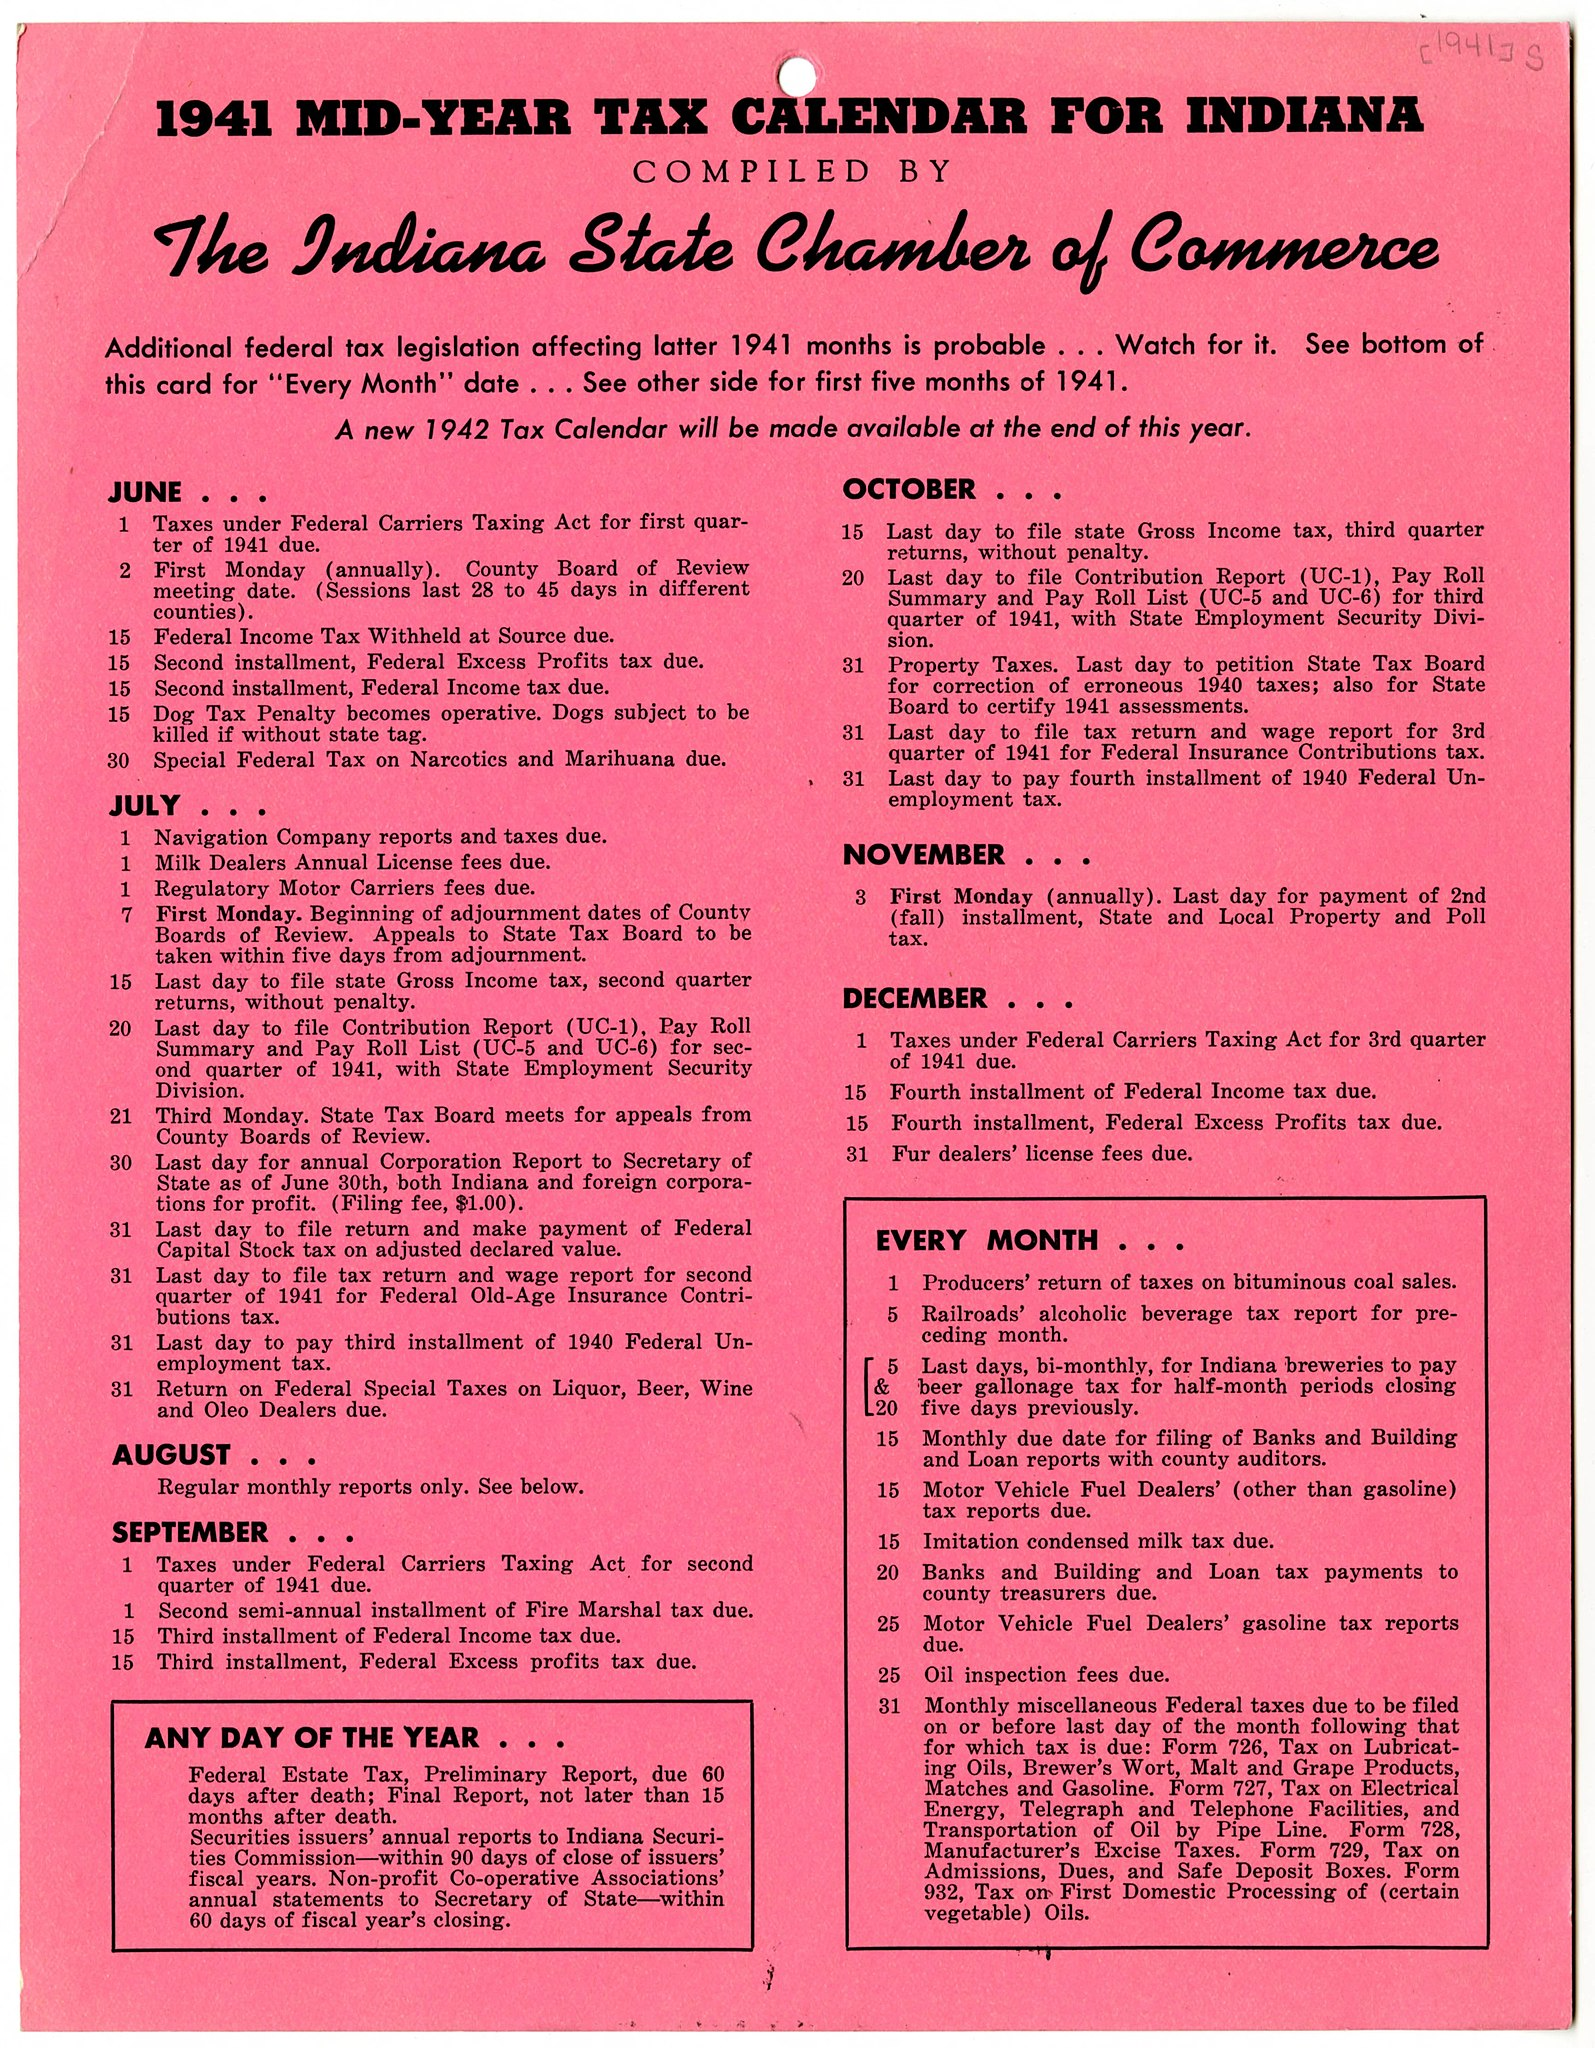 File:1941 mid-year tax calendar for Indiana - DPLA - dae89696f77e09c596eacc3c2f4a4be8 (page 1).jpg - Wikimedia Commons